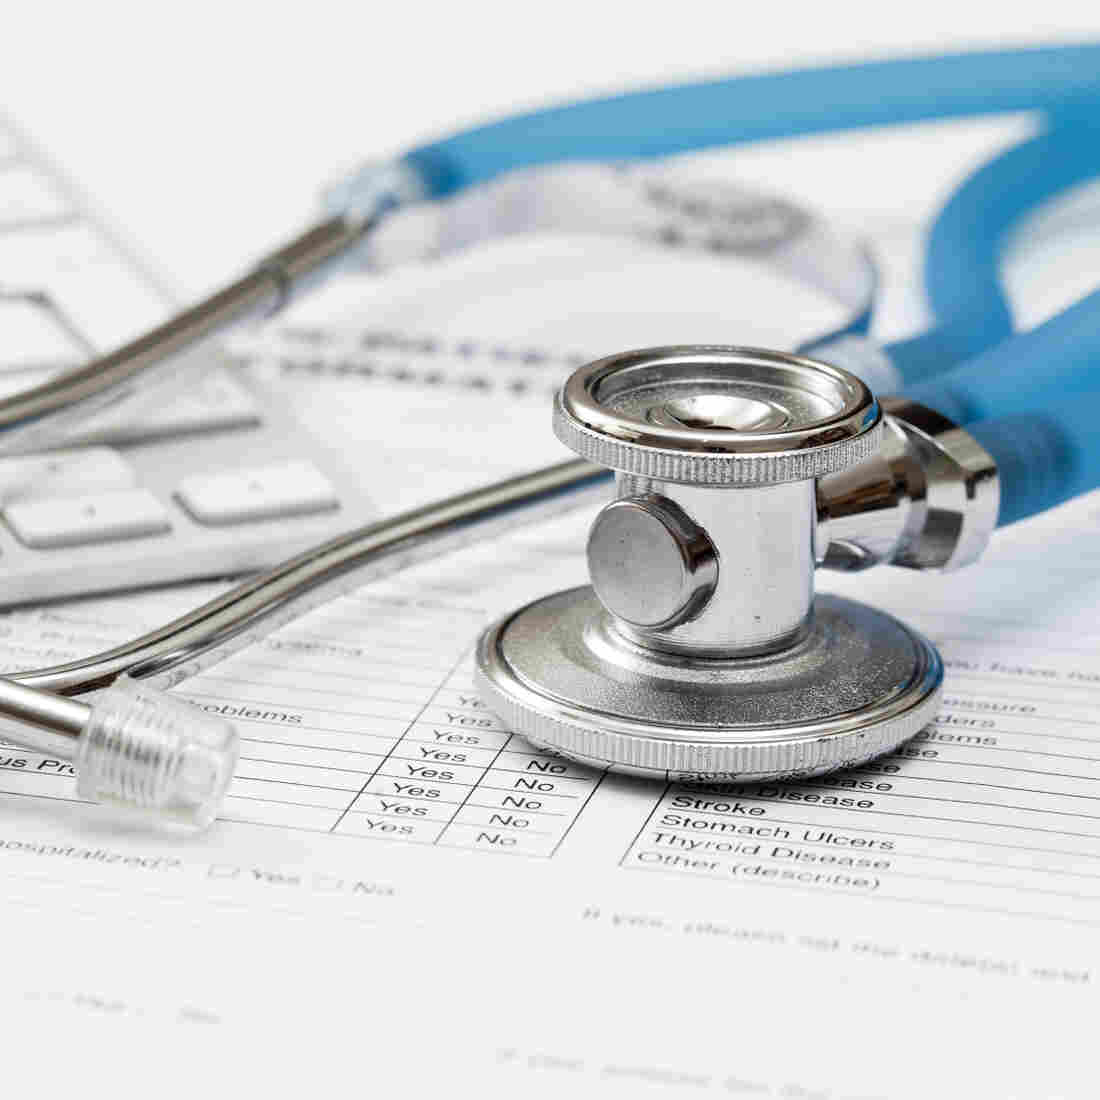 Study Questions Need For Employer Health Care Requirement